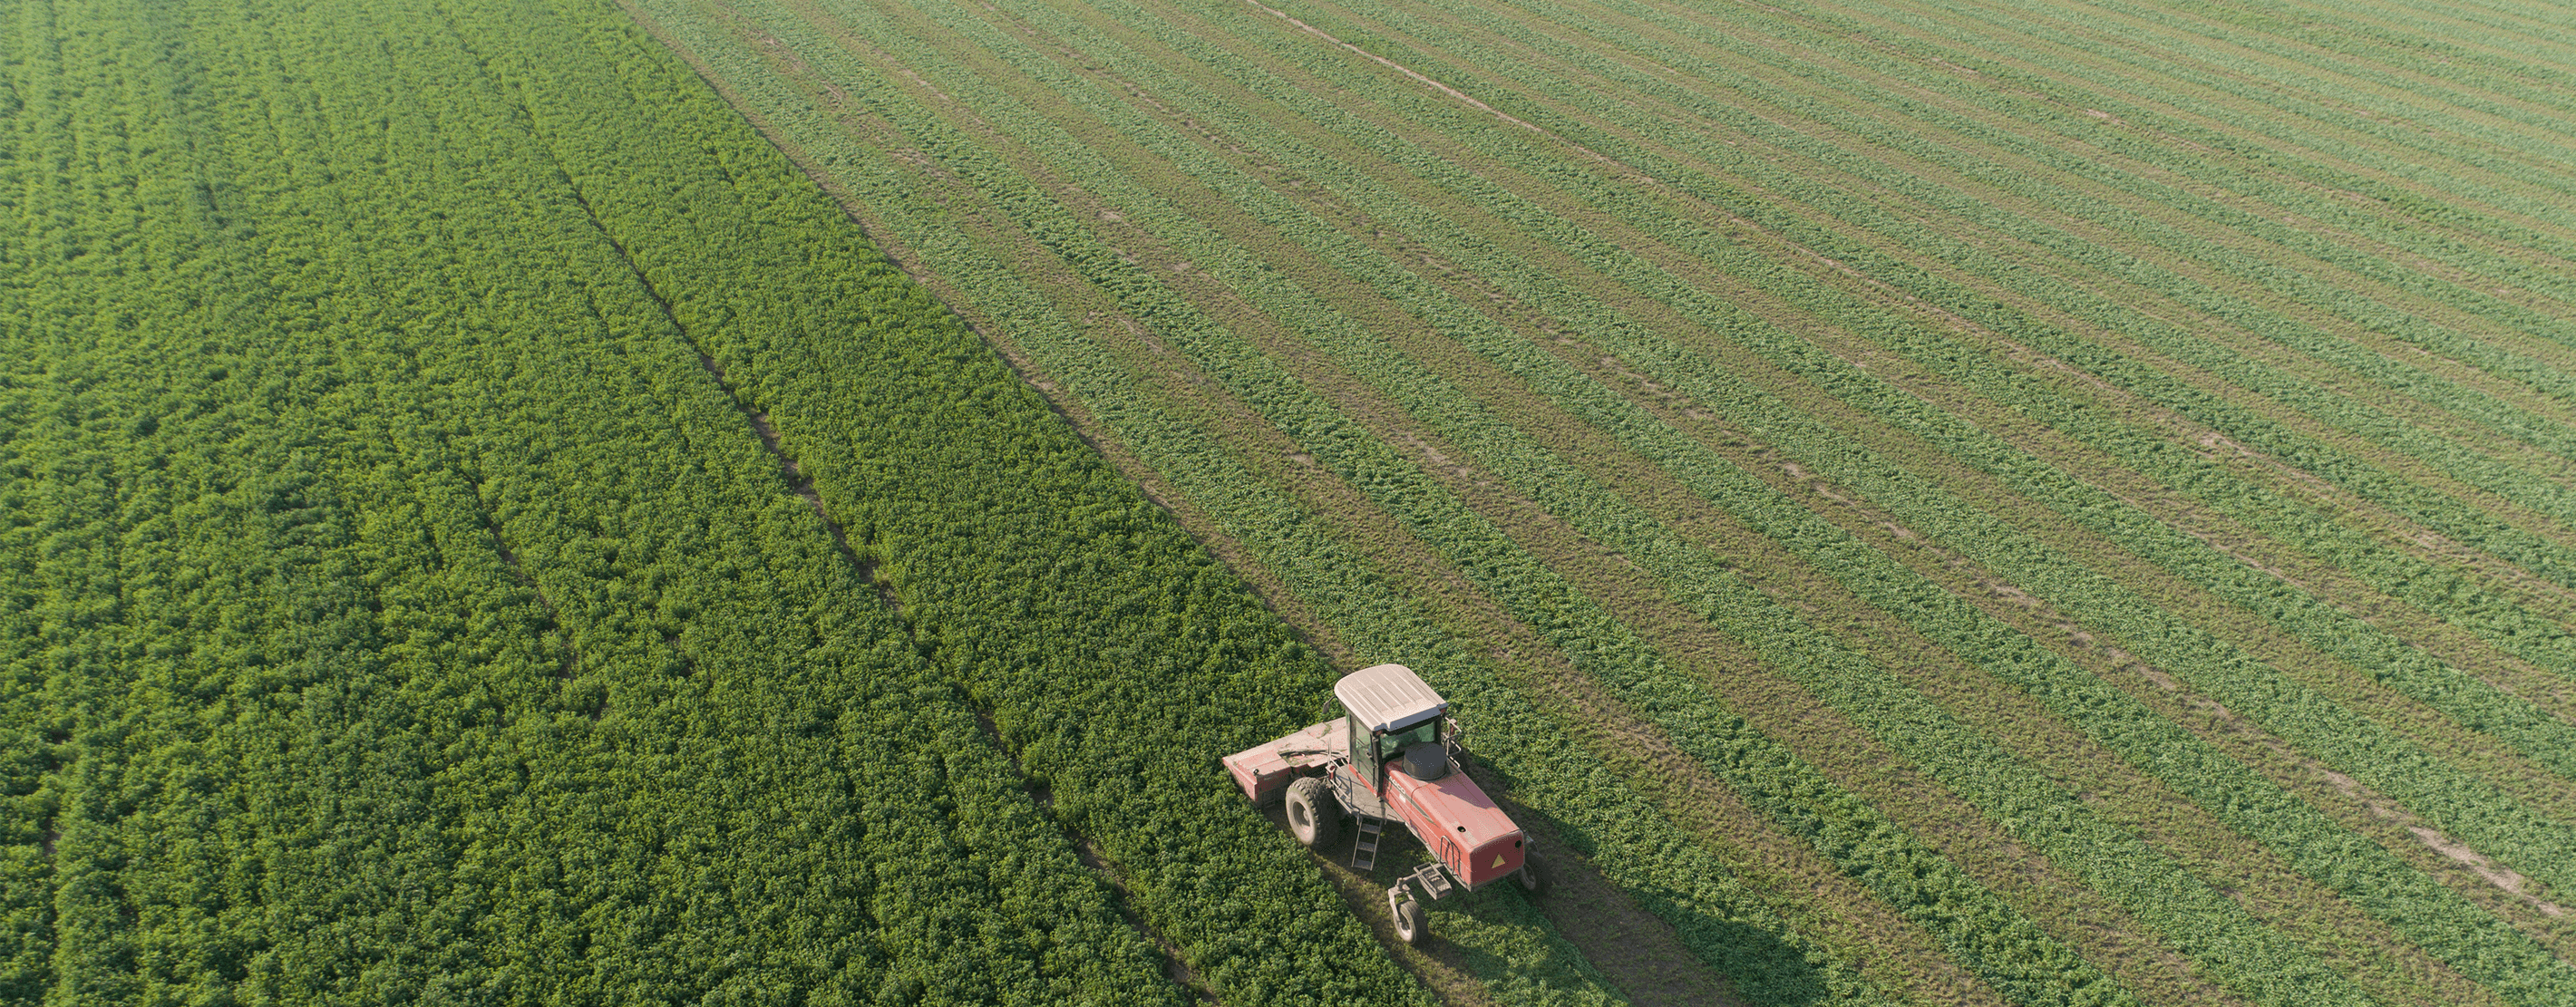 An Aerial View Of A Tractor In The Field Harvesting